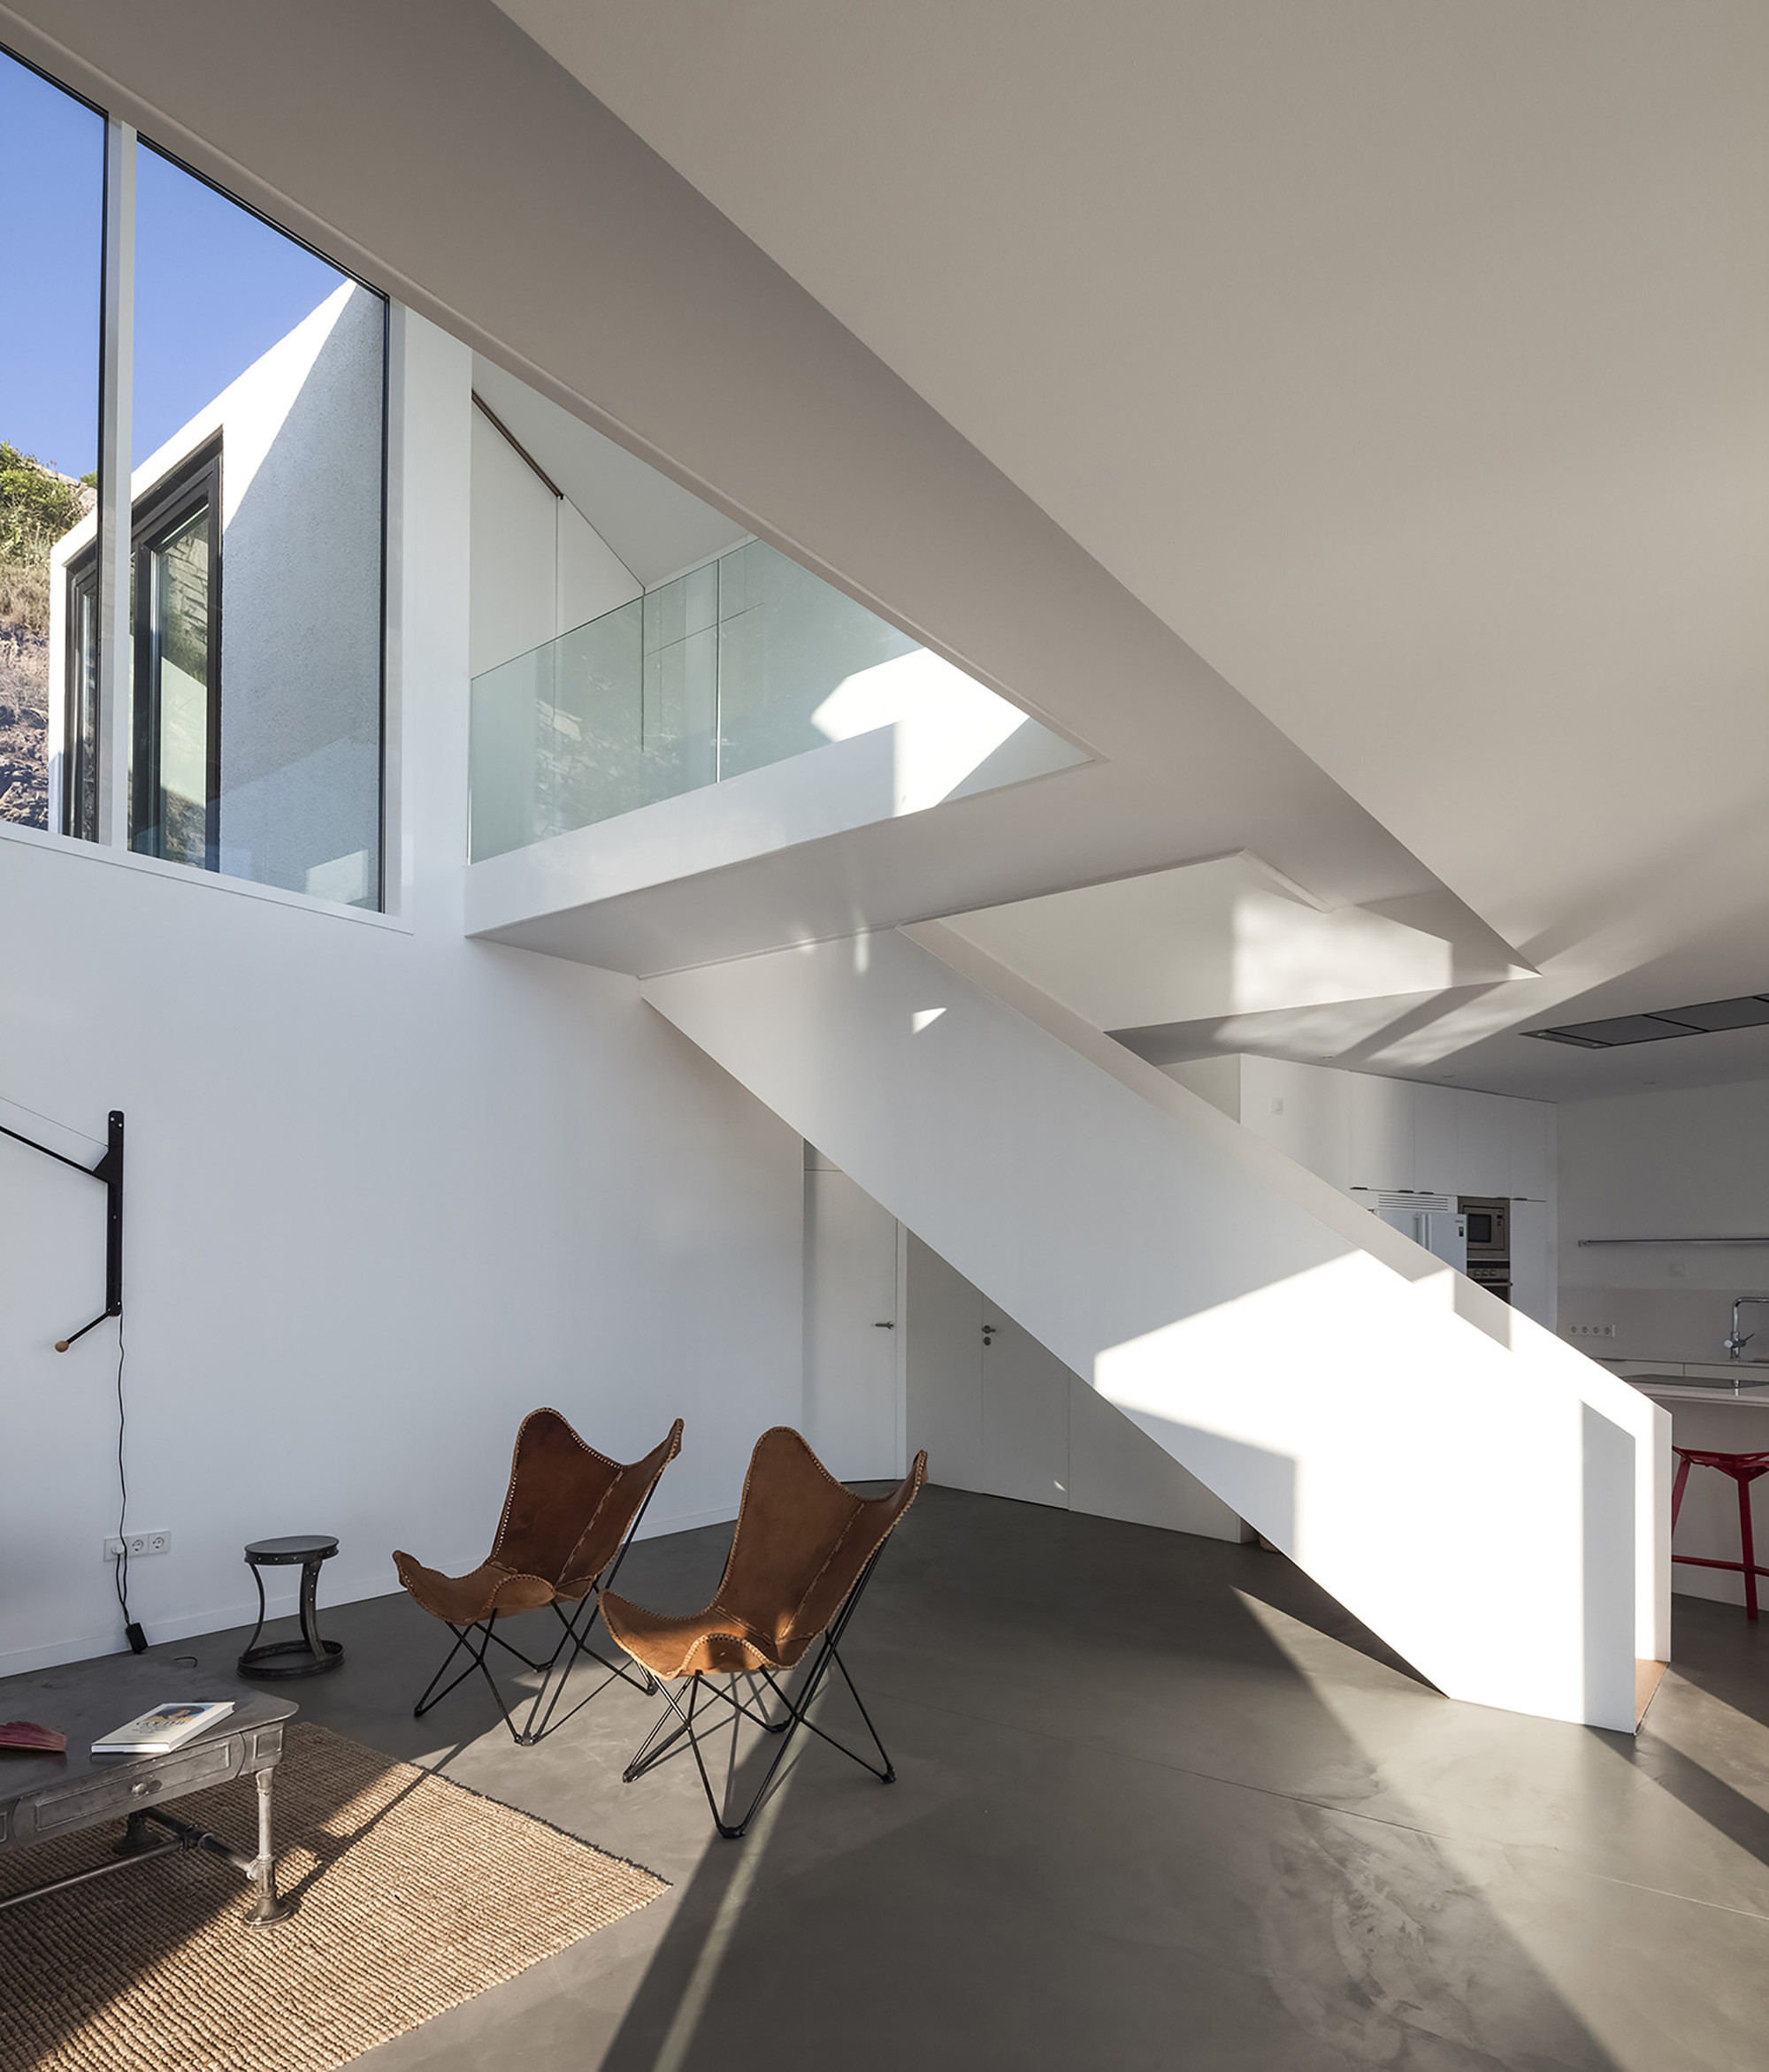 Tree Inside The House Interior Climate Controlled: Sunflower House By Cadaval & Solà-Morales In Girona, Spain